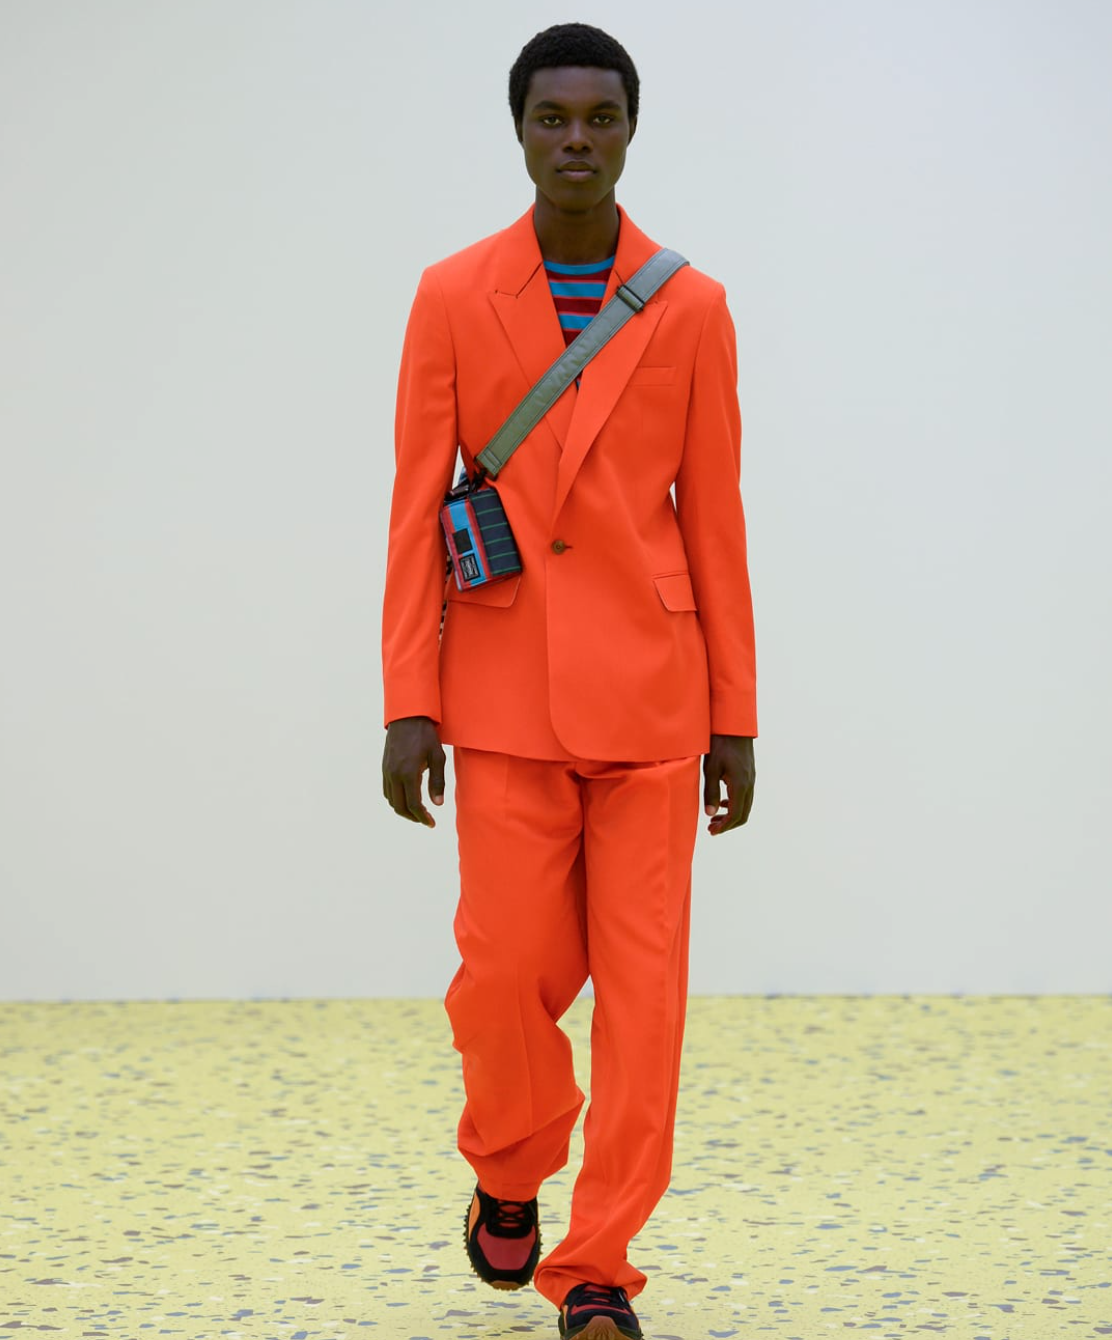 fashion week homme masculine marque zwitter made in france